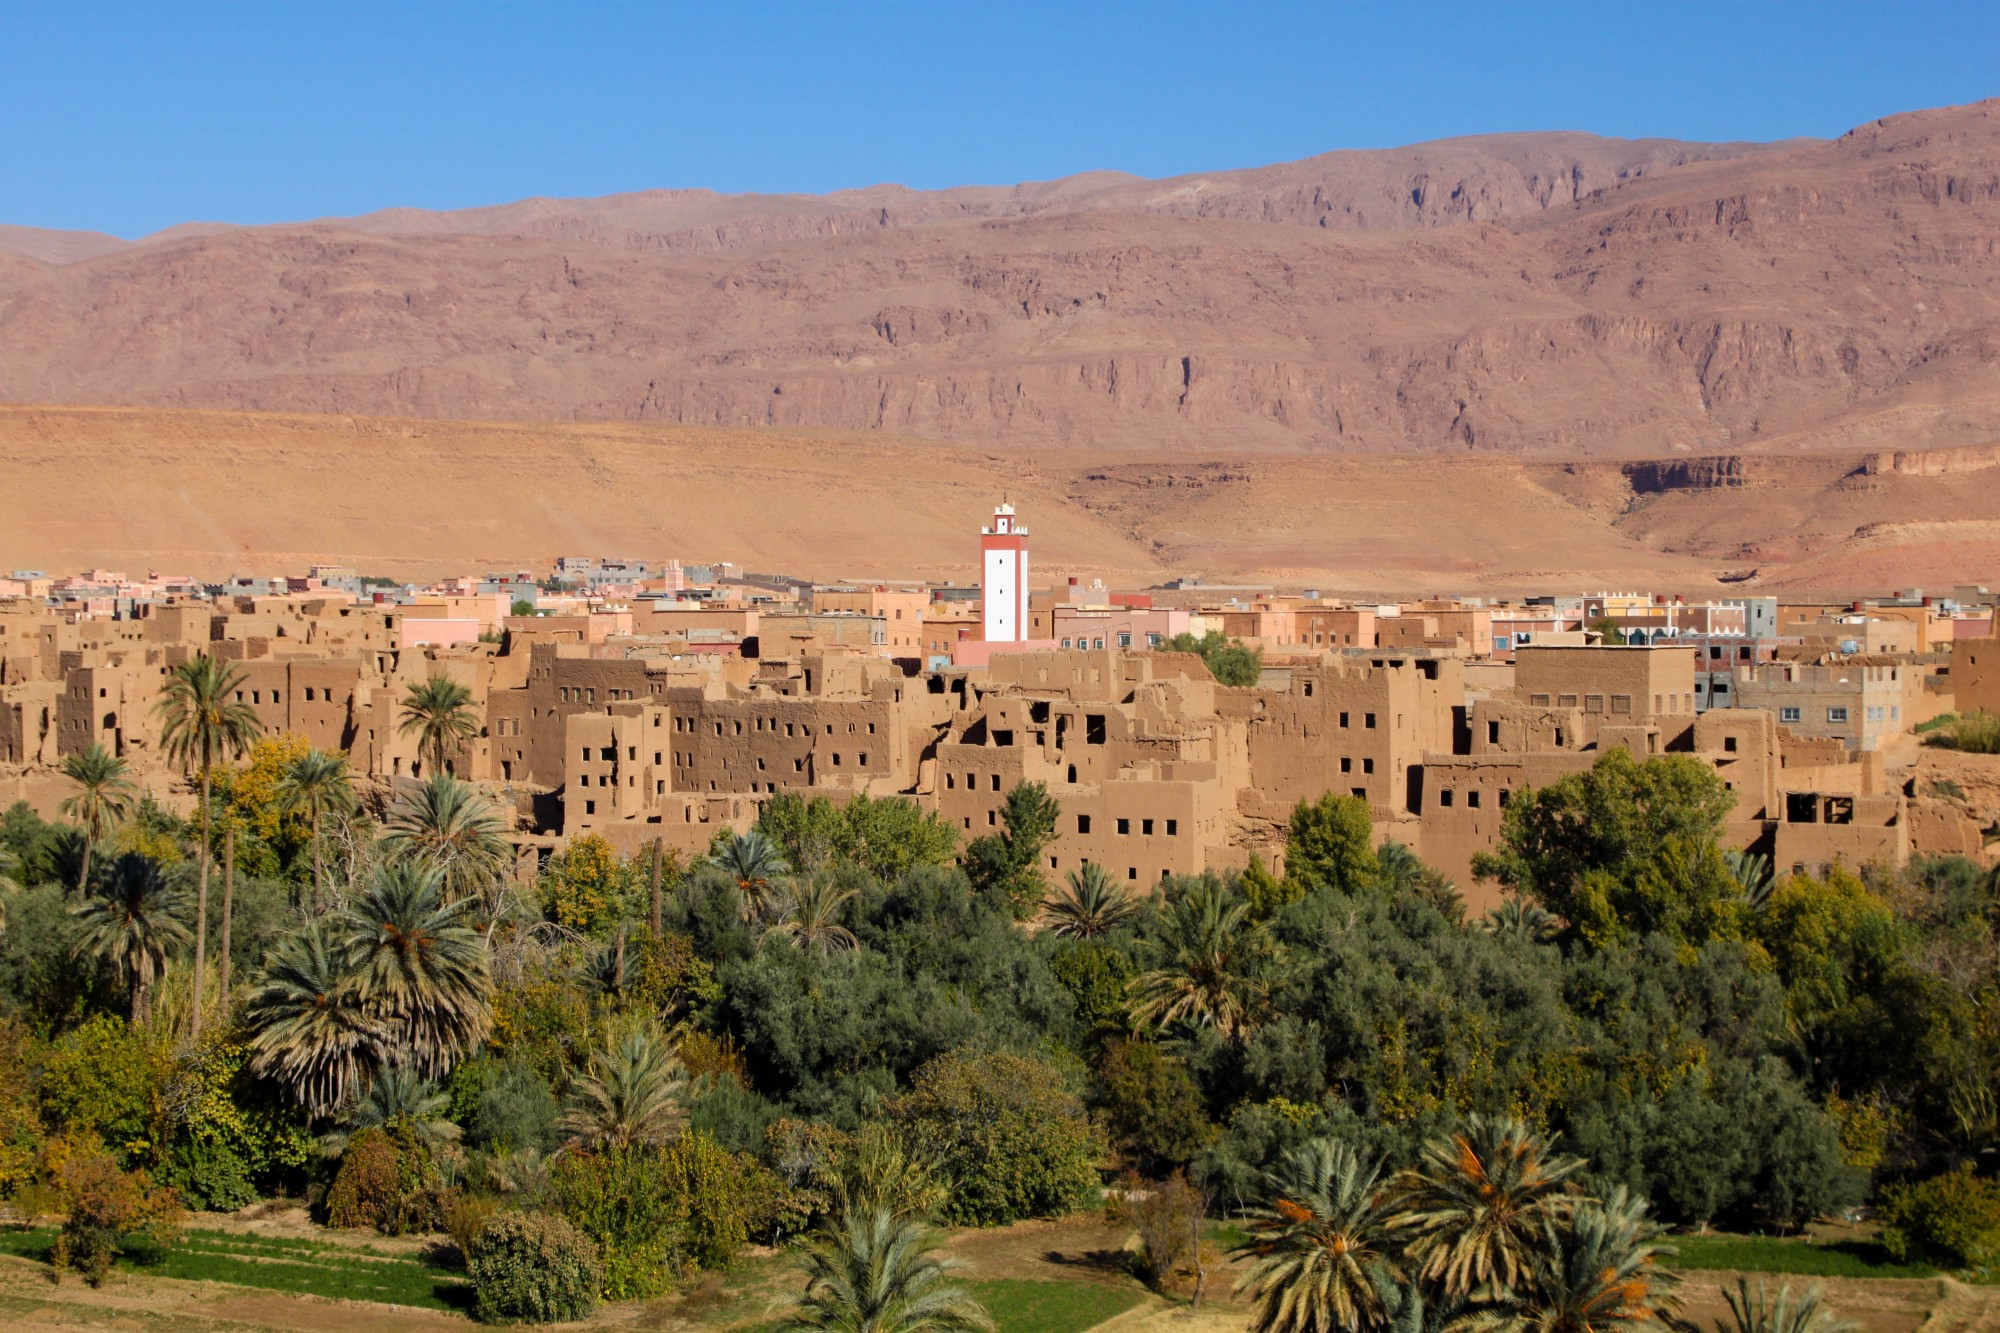 The most beautiful route between Marrakech and Ouarzazate, 3 Days tour from Fes to Marrakech,9 Days Tour from Casablanca around Morocco